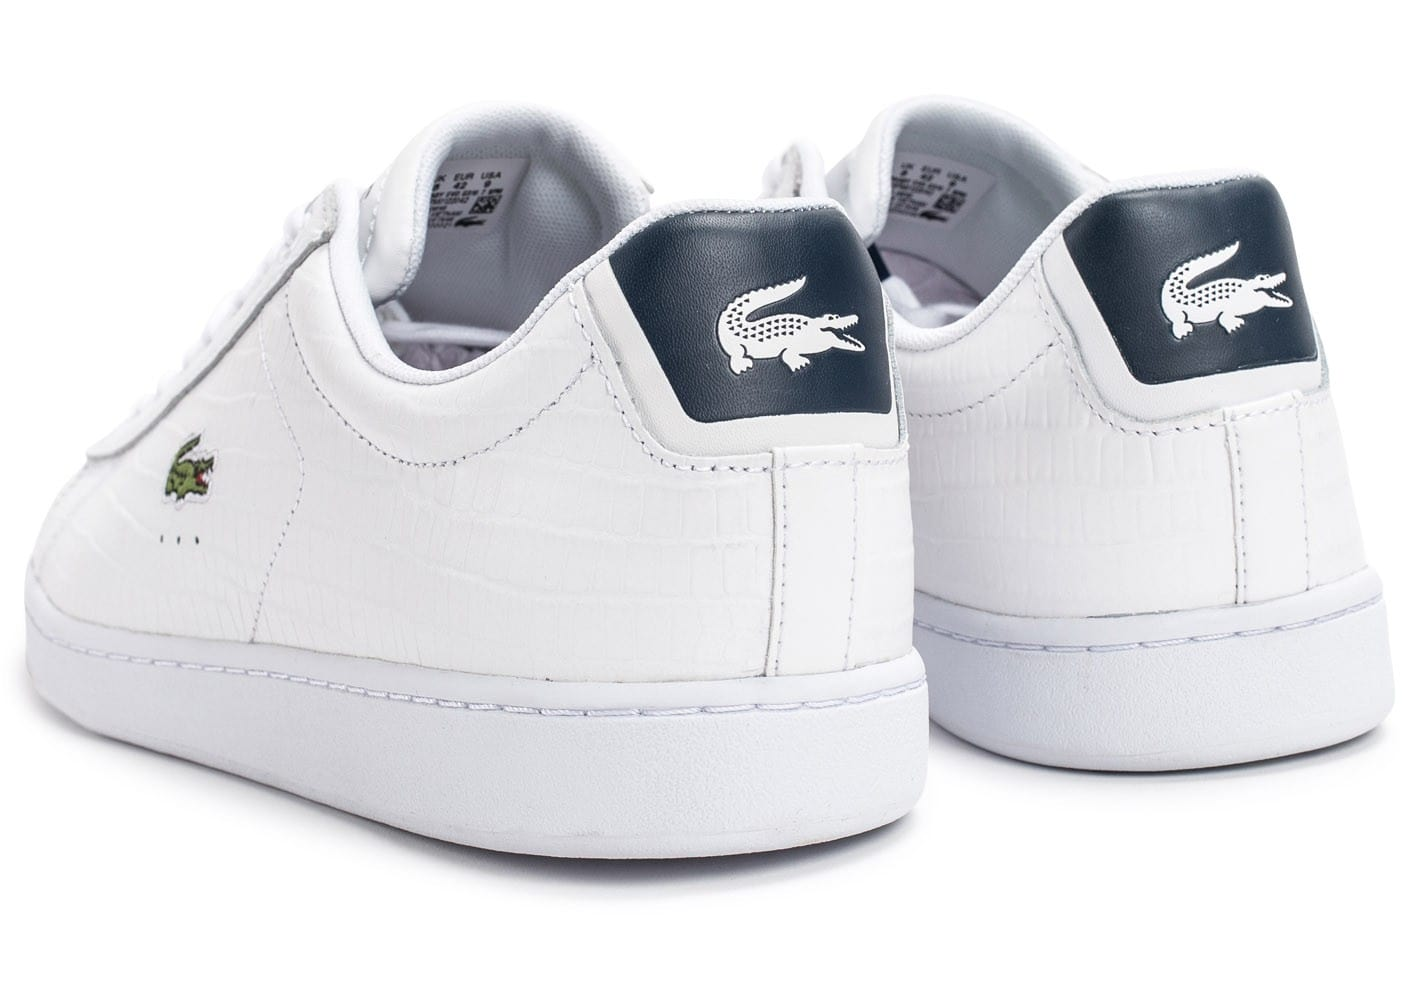 50025fb3ff1 Croc Evo Baskets Carnaby Chaussures Homme Blanche Lacoste Bleu SHwaqFwx